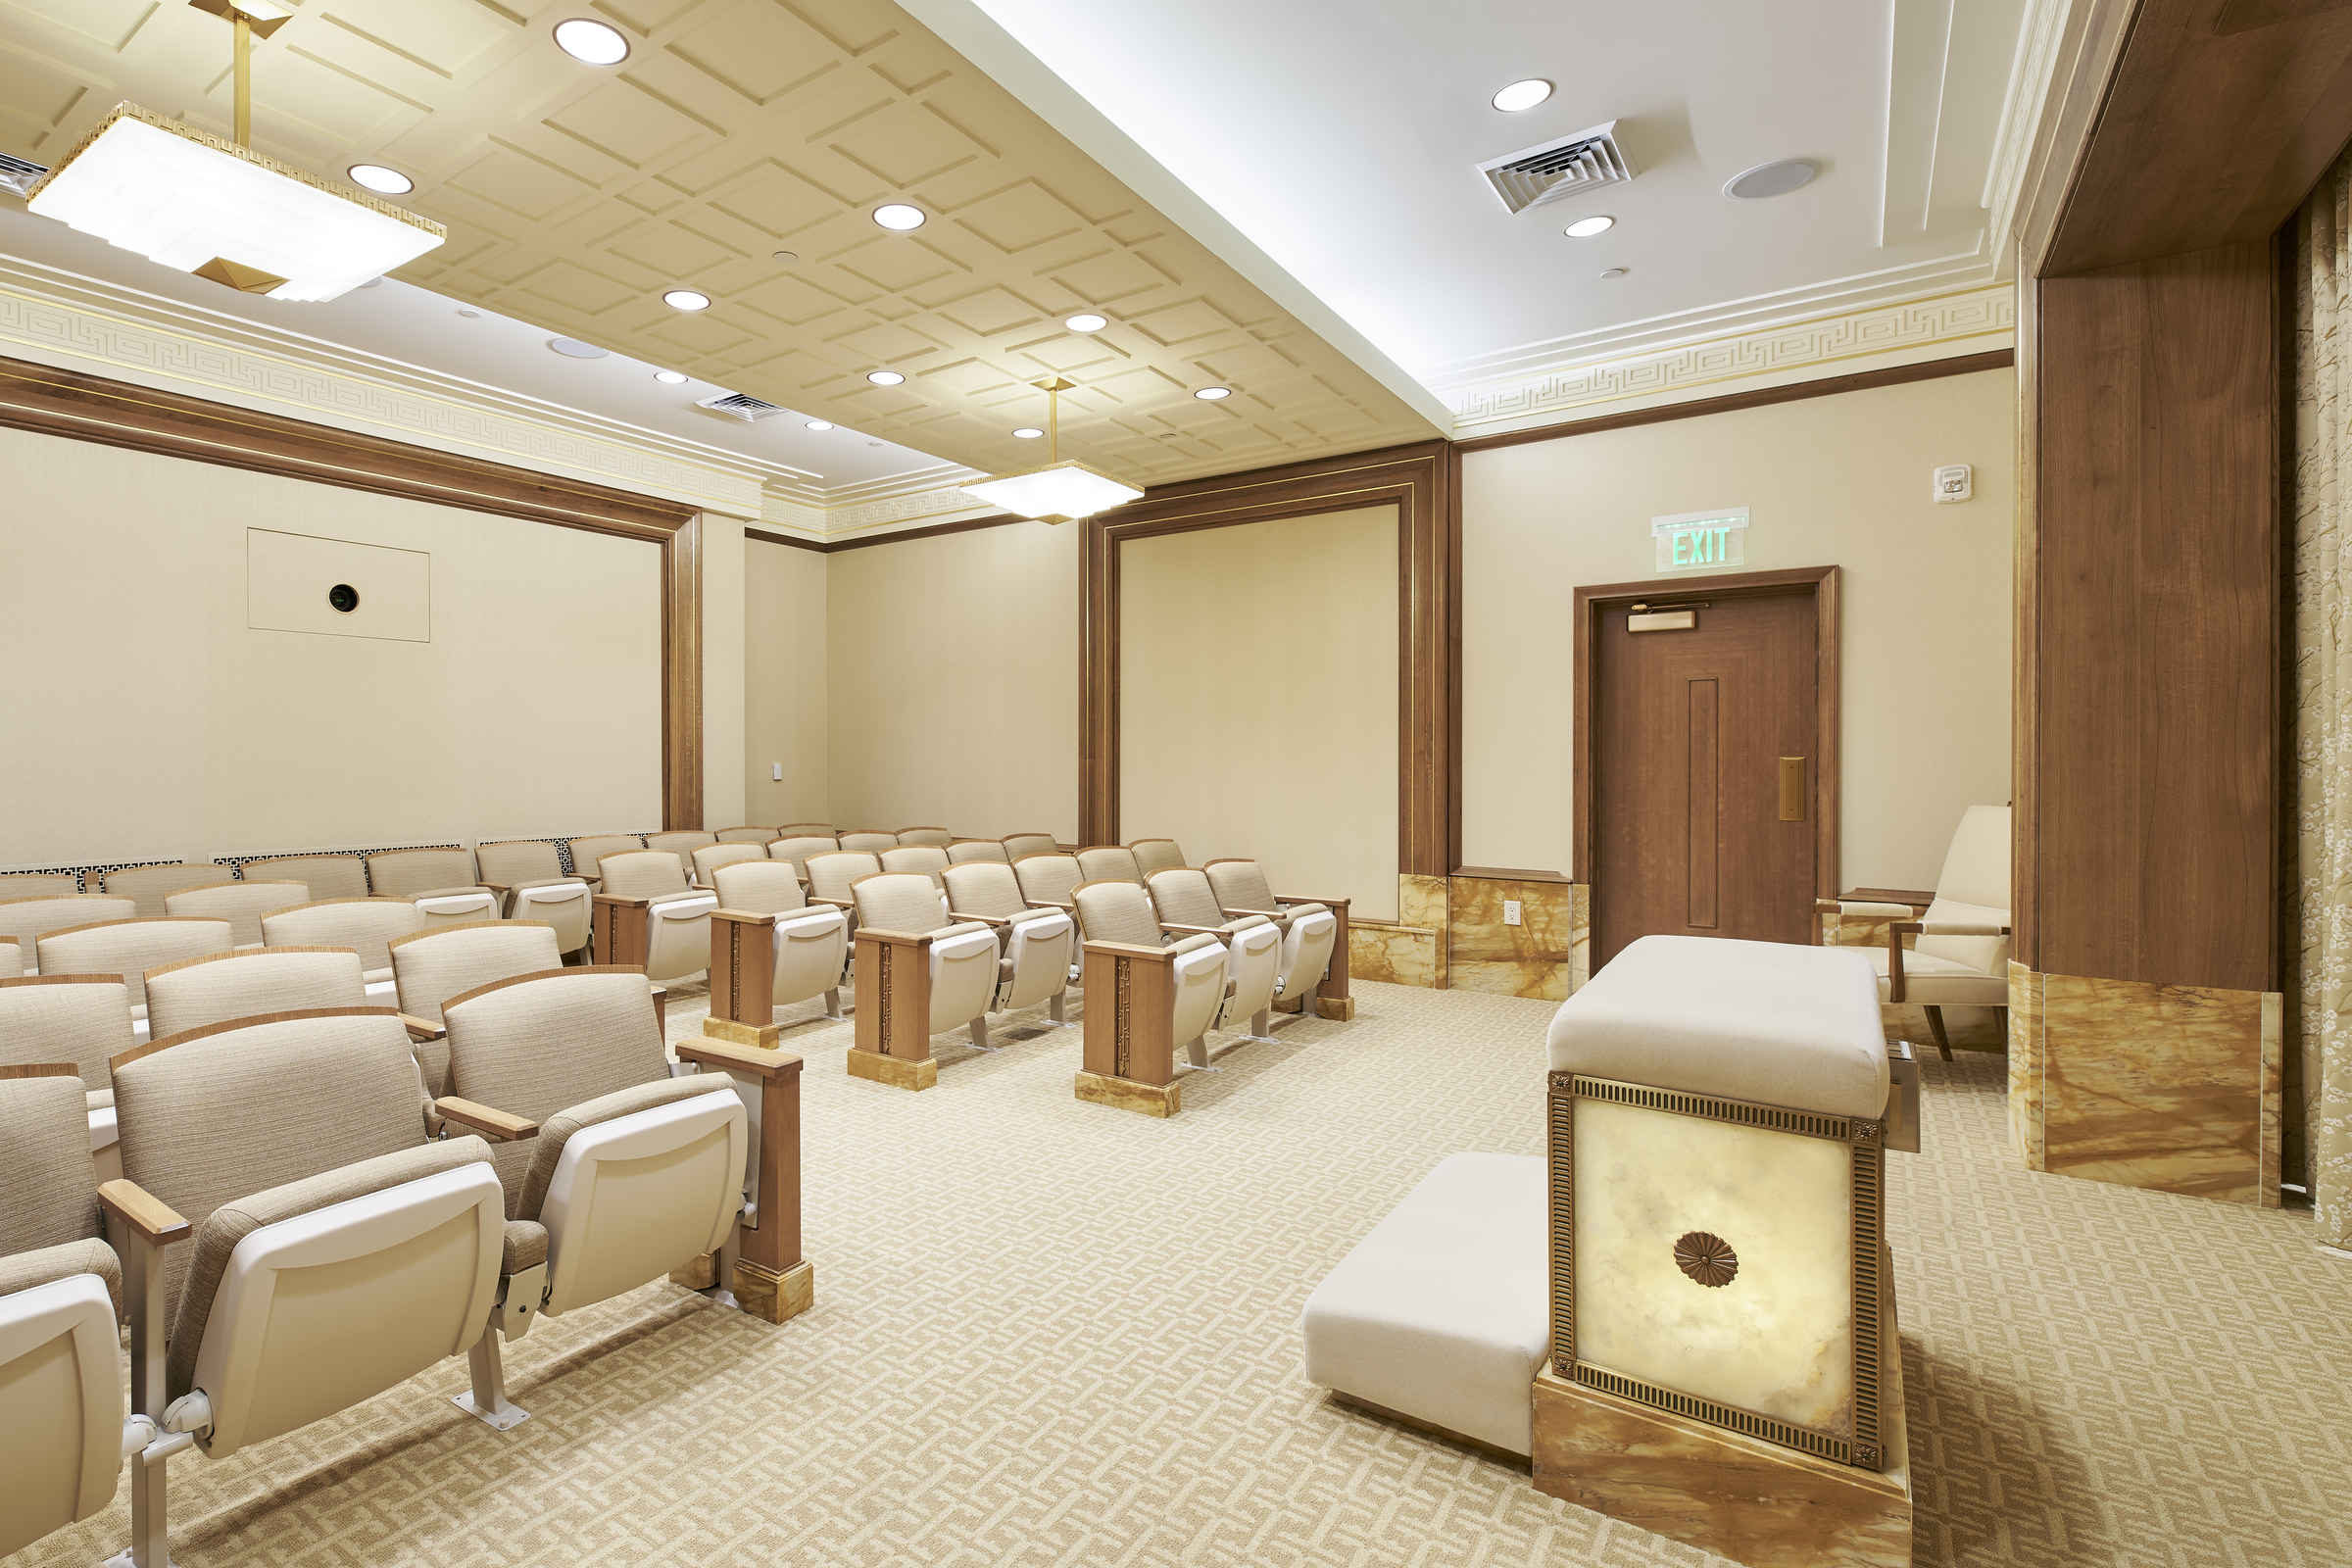 An instruction room in the newly renovated Oakland California Temple, of The Church of Jesus Christ of Latter-day Saints, in Oakland, Calif.